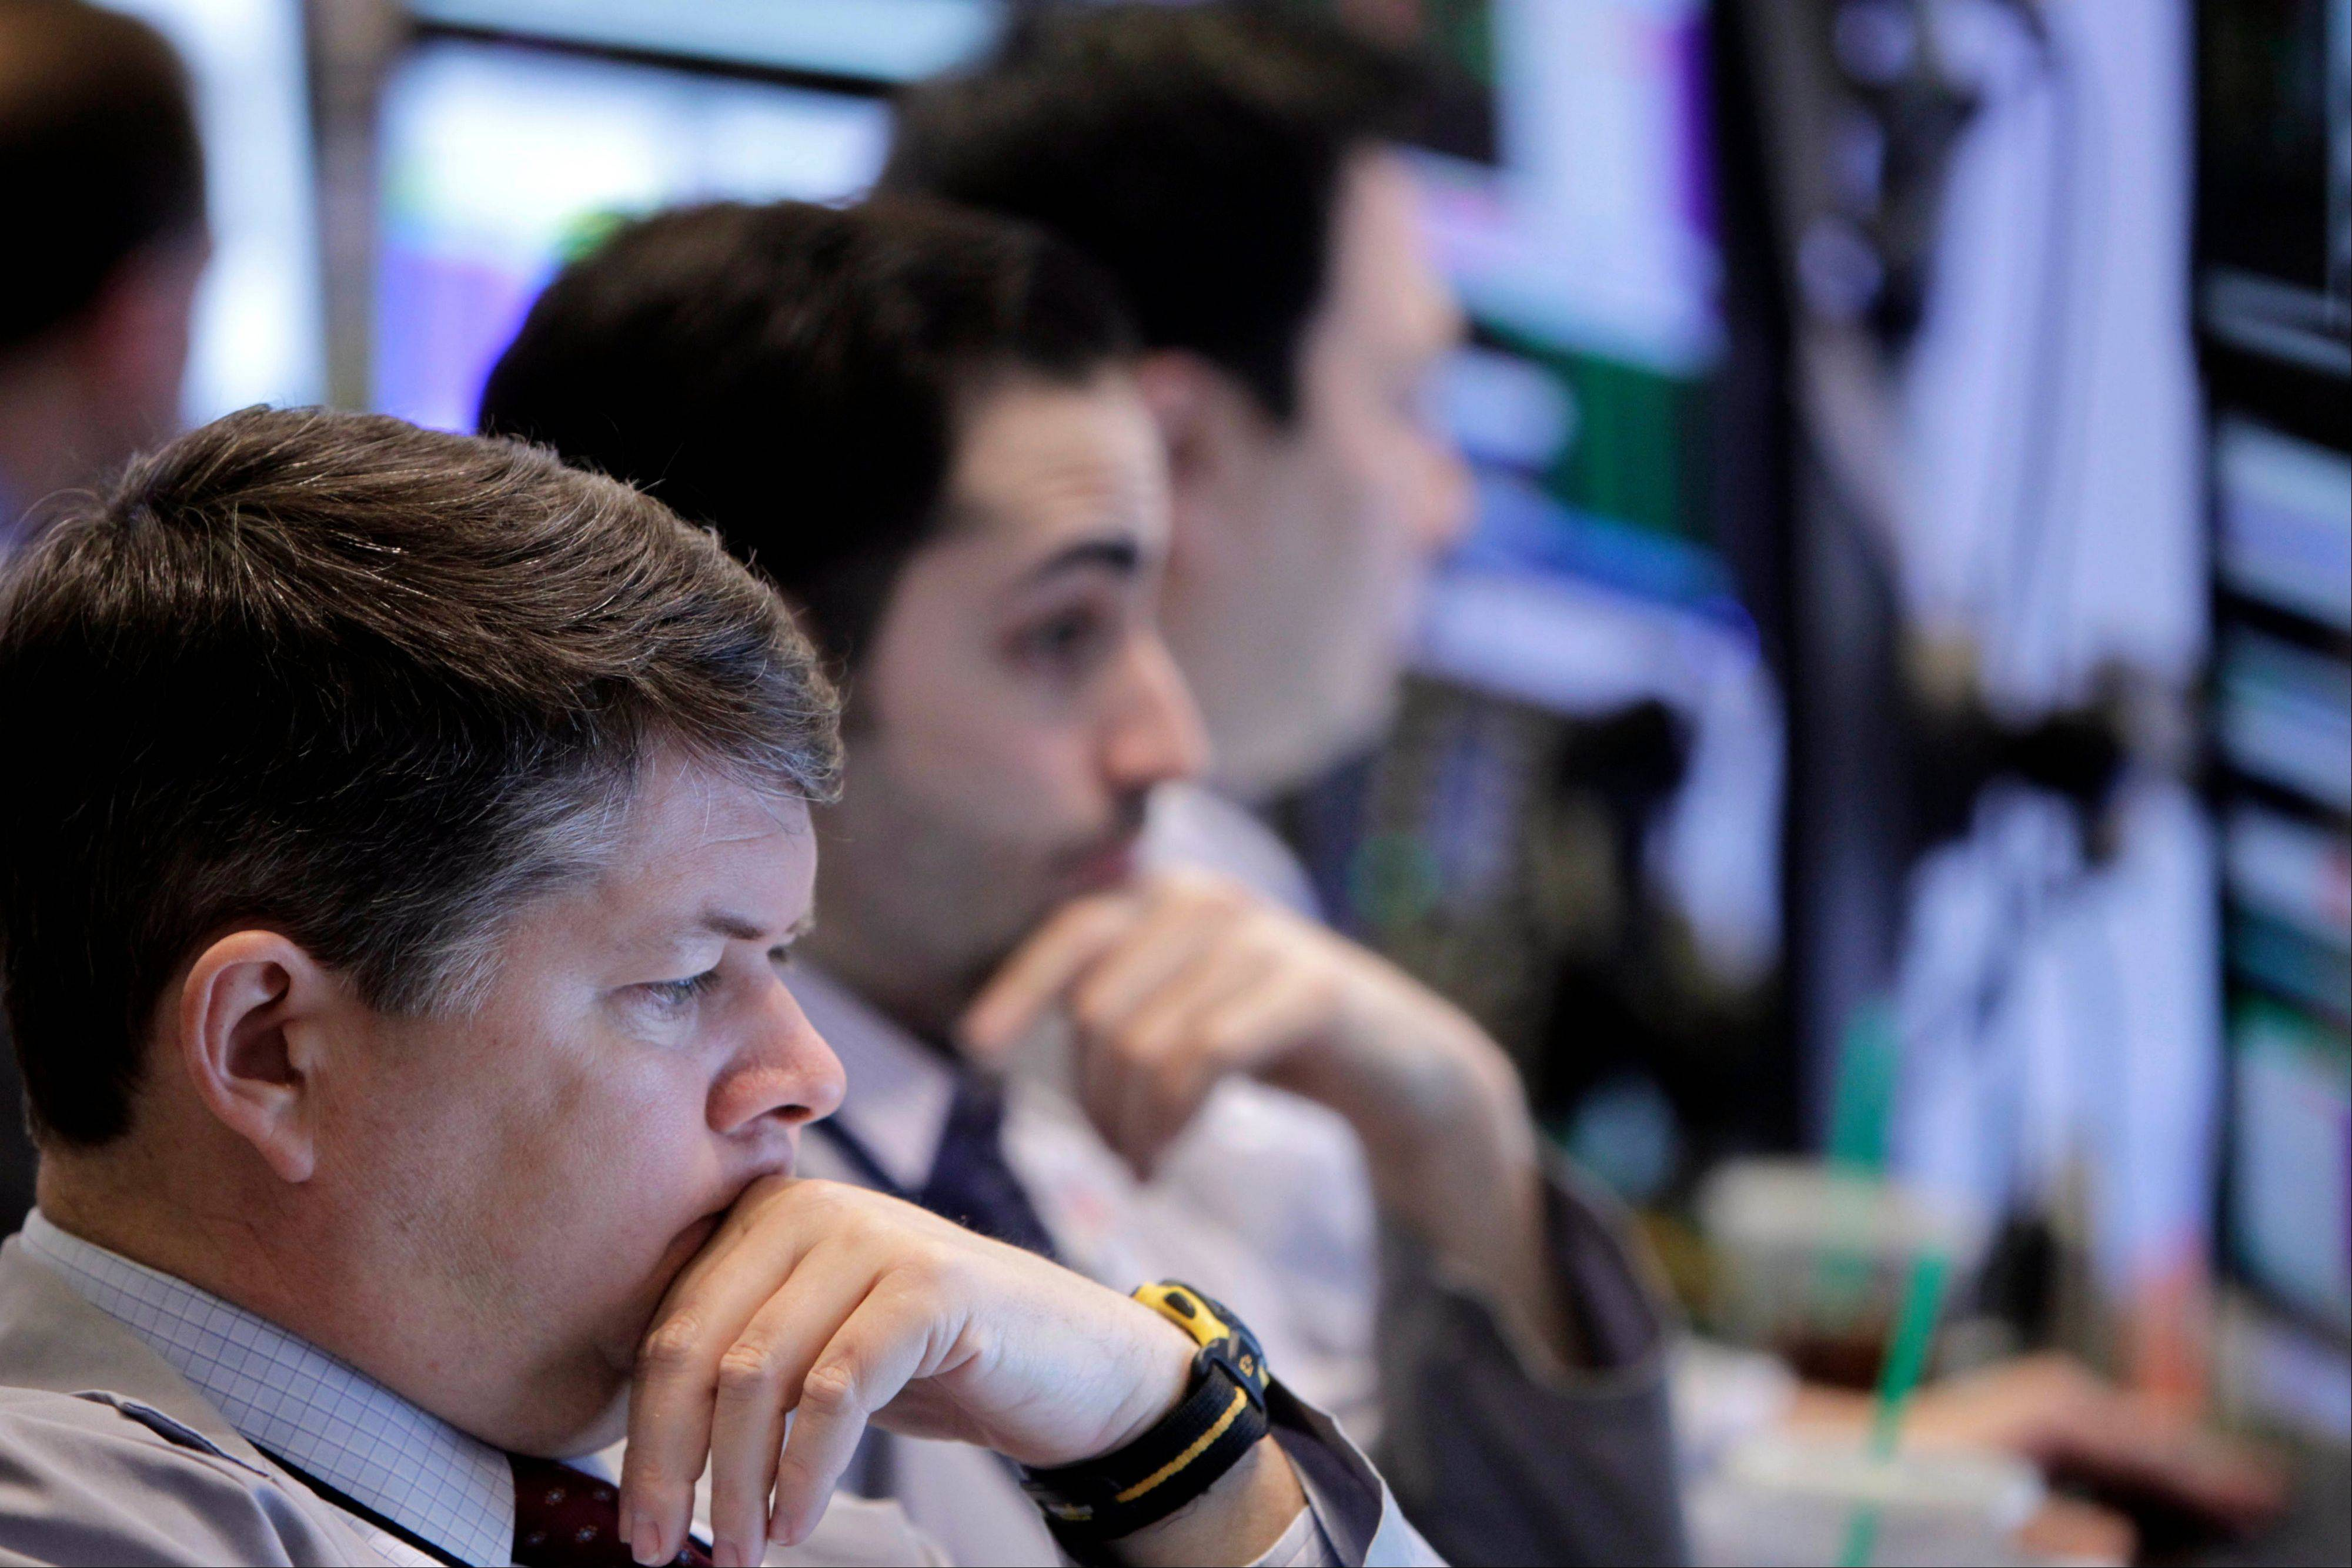 U.S. stocks fell, after a two-day advance in the Standard & Poor's 500 Index, as corporate earnings reports disappointed and European policy makers warned the euro's advance could hamper the region's recovery.